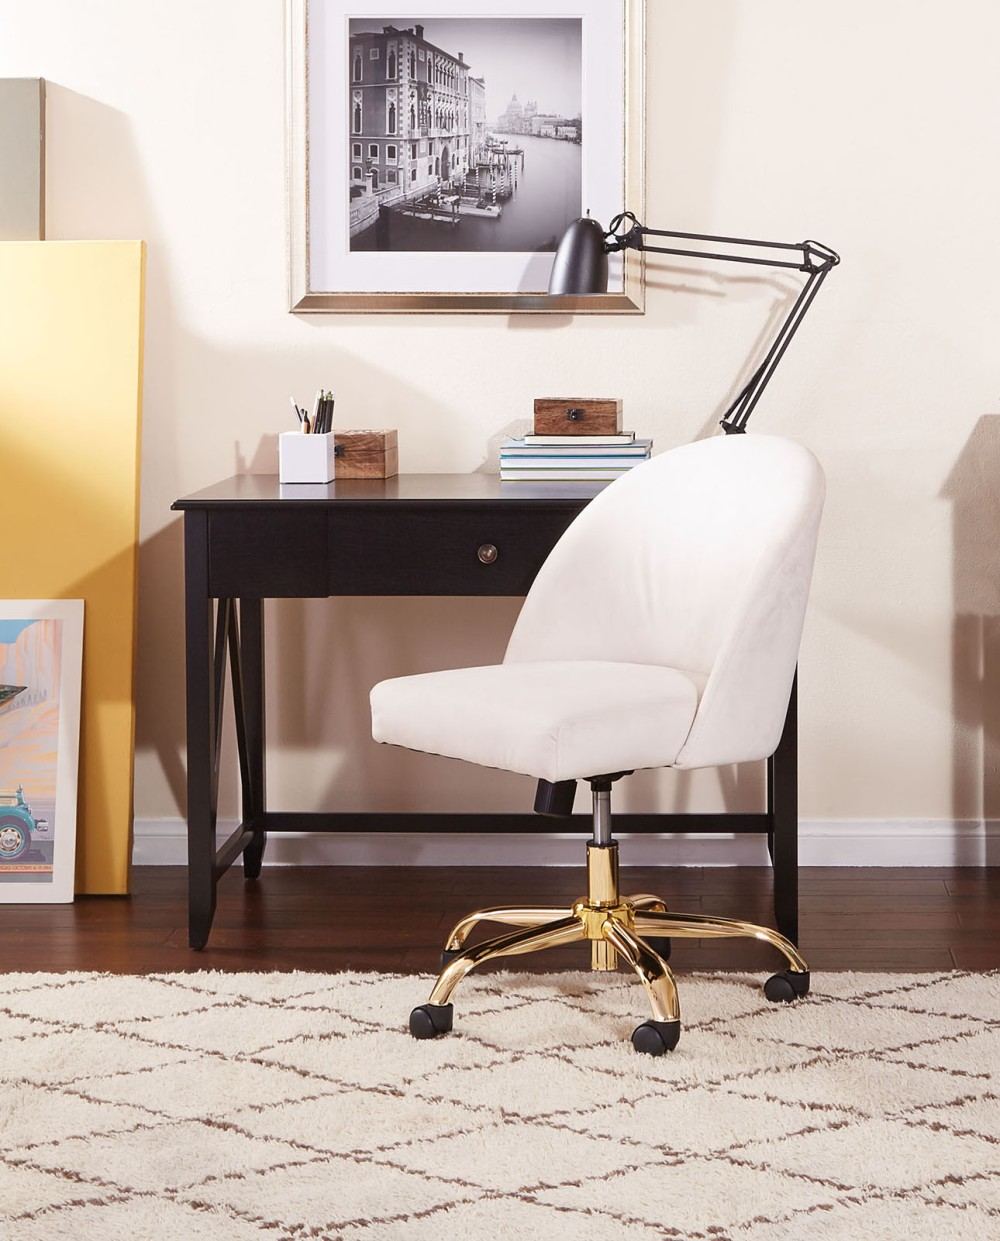 The Avenue Six Layton Office Chair – combining the style of an accent chair with the function of an office chair.